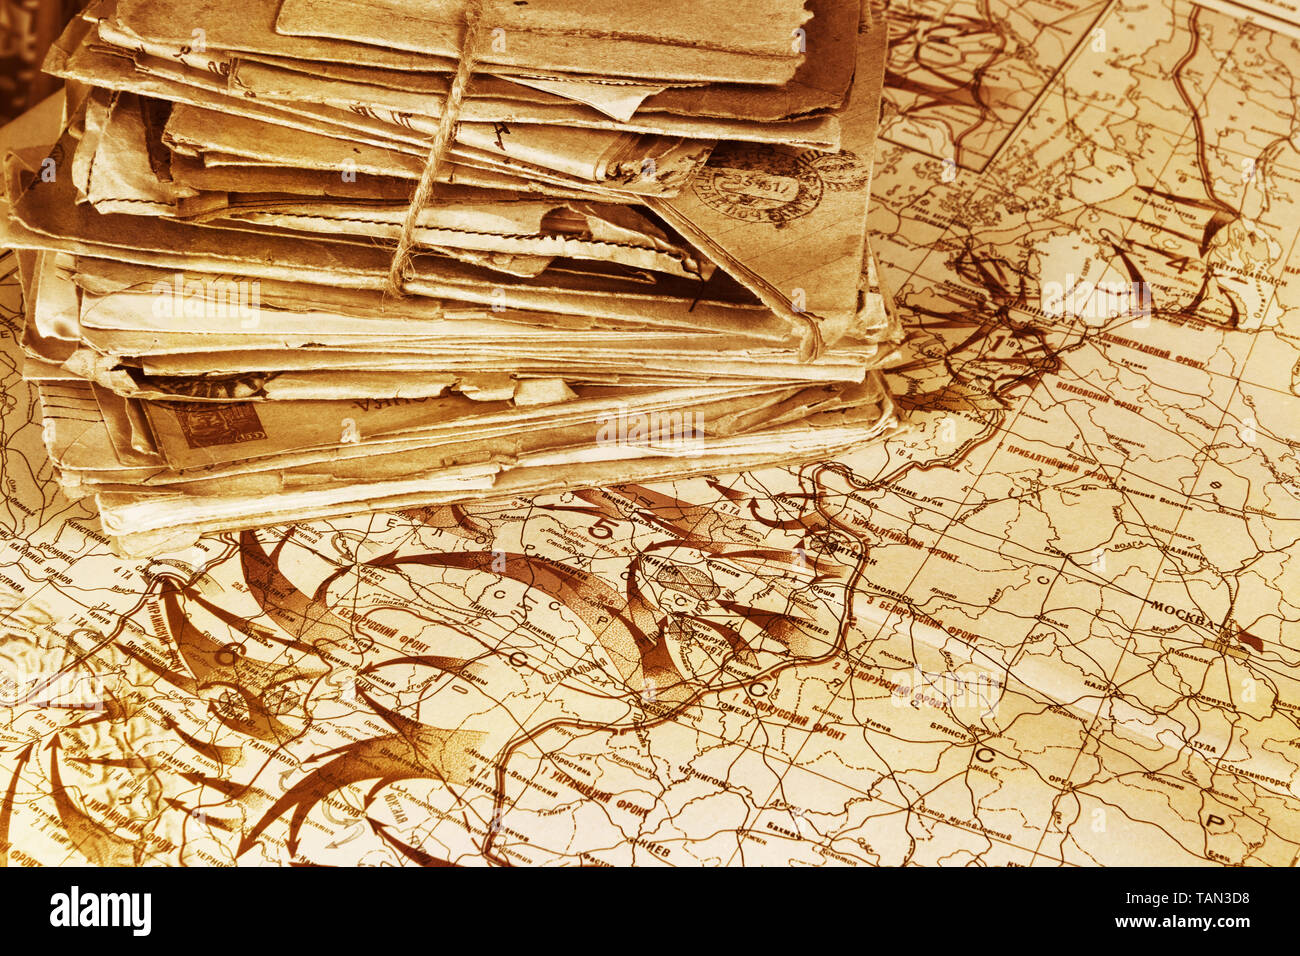 Heap of the postal letters on the Soviet military map of the World War 2, 1944. Map published in 1948 - Stock Image